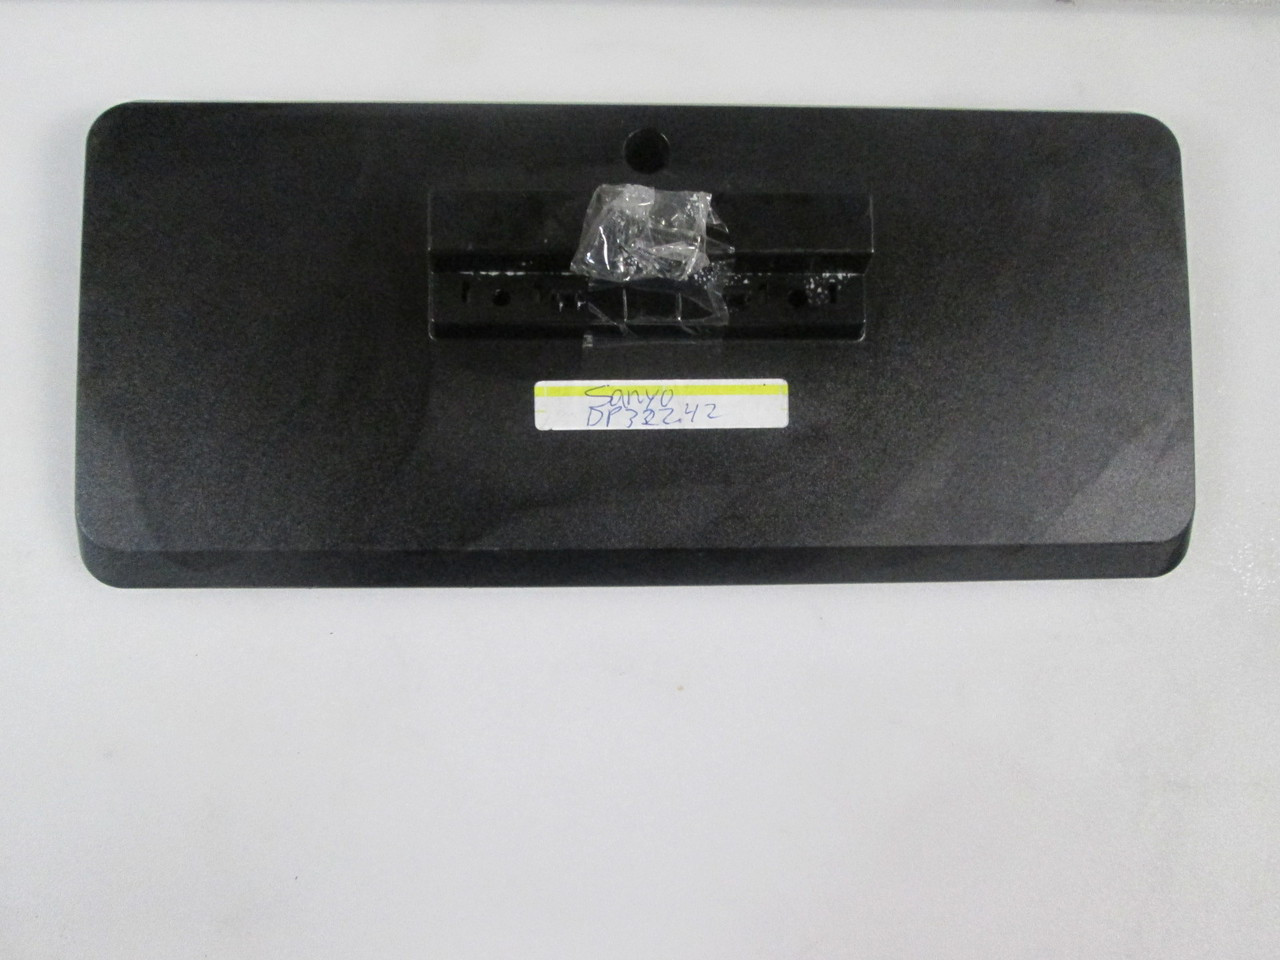 Sanyo Dp32242 Tv Stand Base Apsd32t030 Screws Included